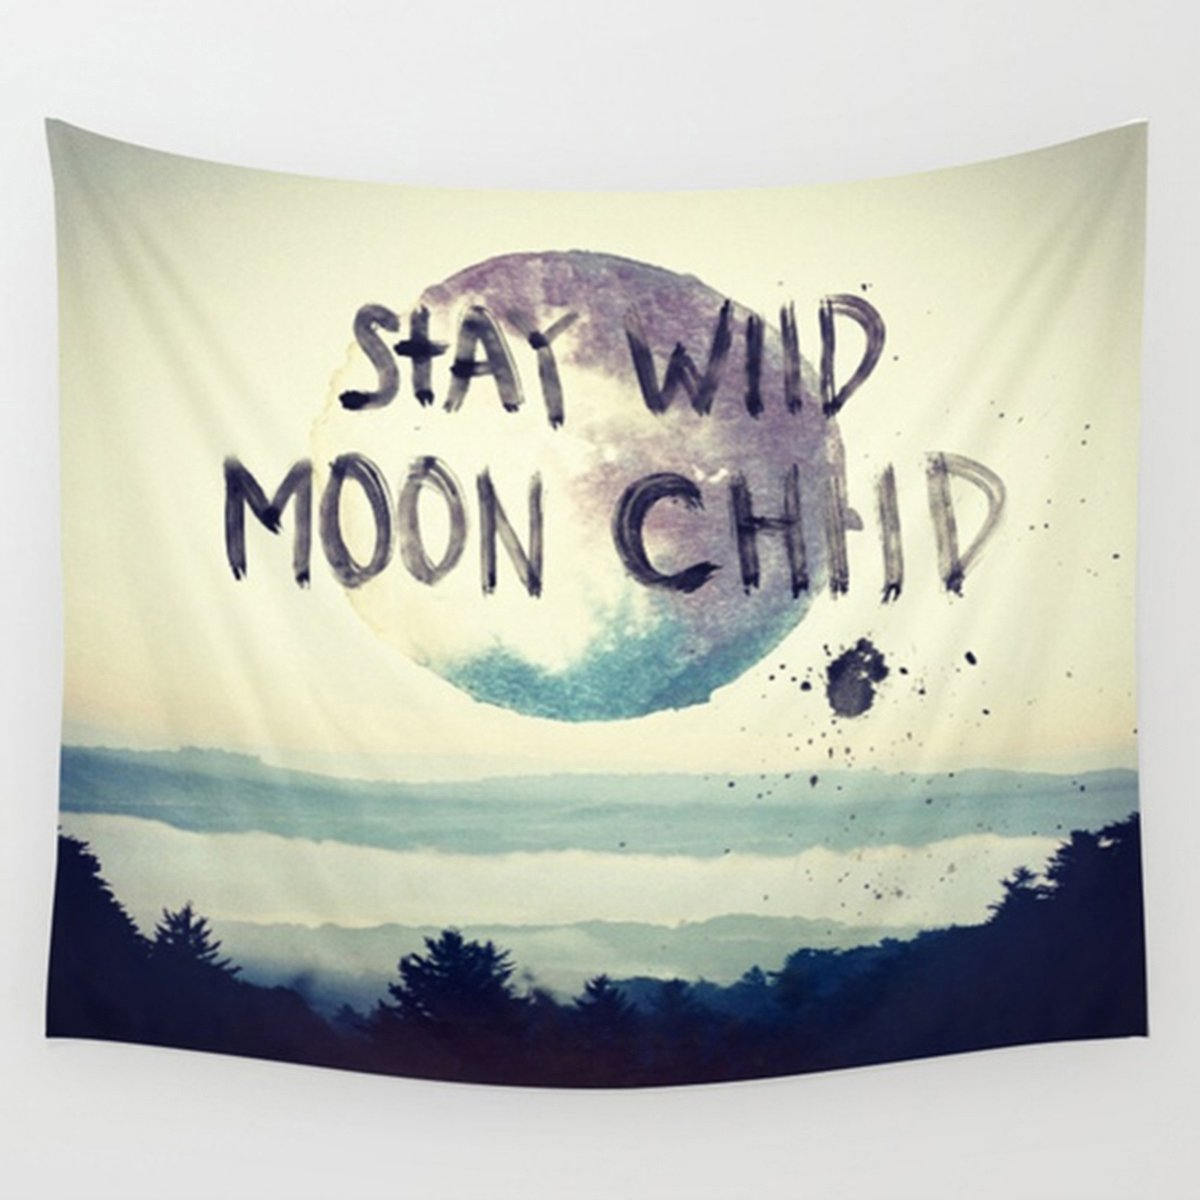 Koongso Moon and Forest Wall Hanging Tapestry Hippie Mandala Handicraft Decoration Beach Blanket for Bedroom Dorm Decor 60'' W x 80'' L